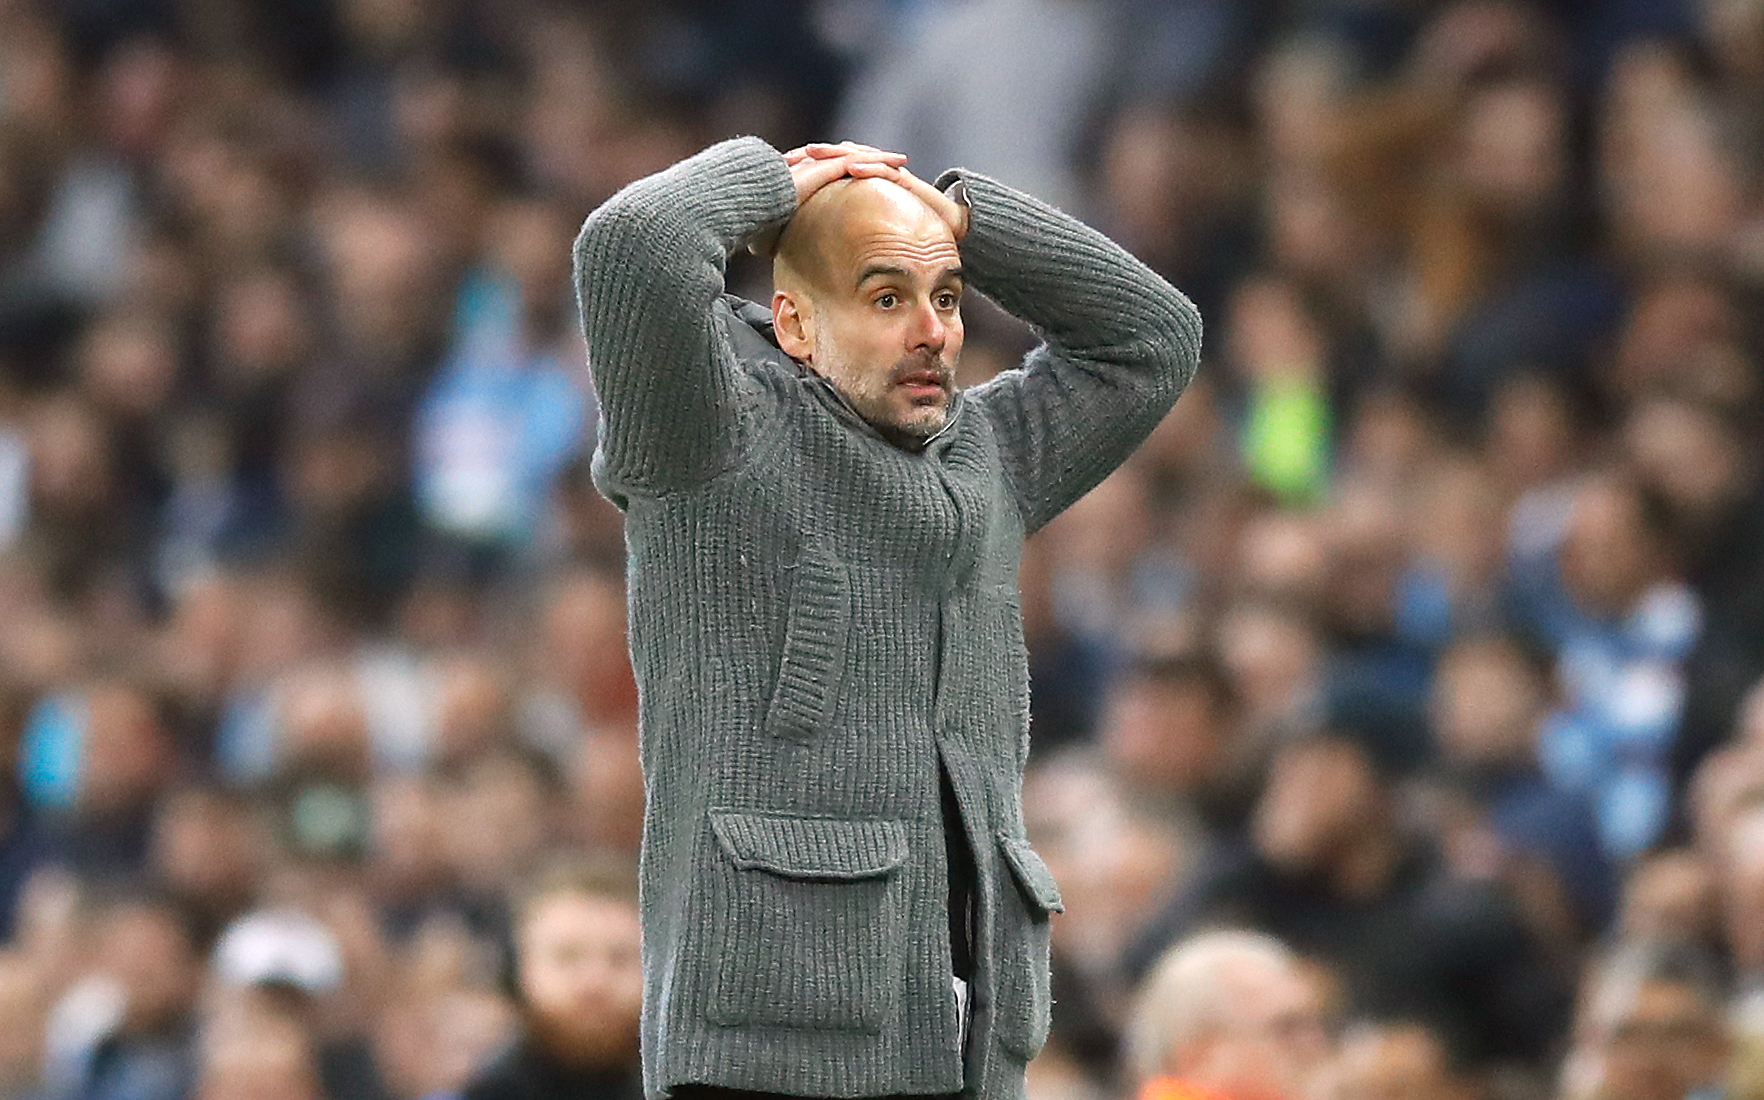 Macaulay thinks Pep will get over City's Champions League issues to complete an incredible quadruple. Image: PA Images